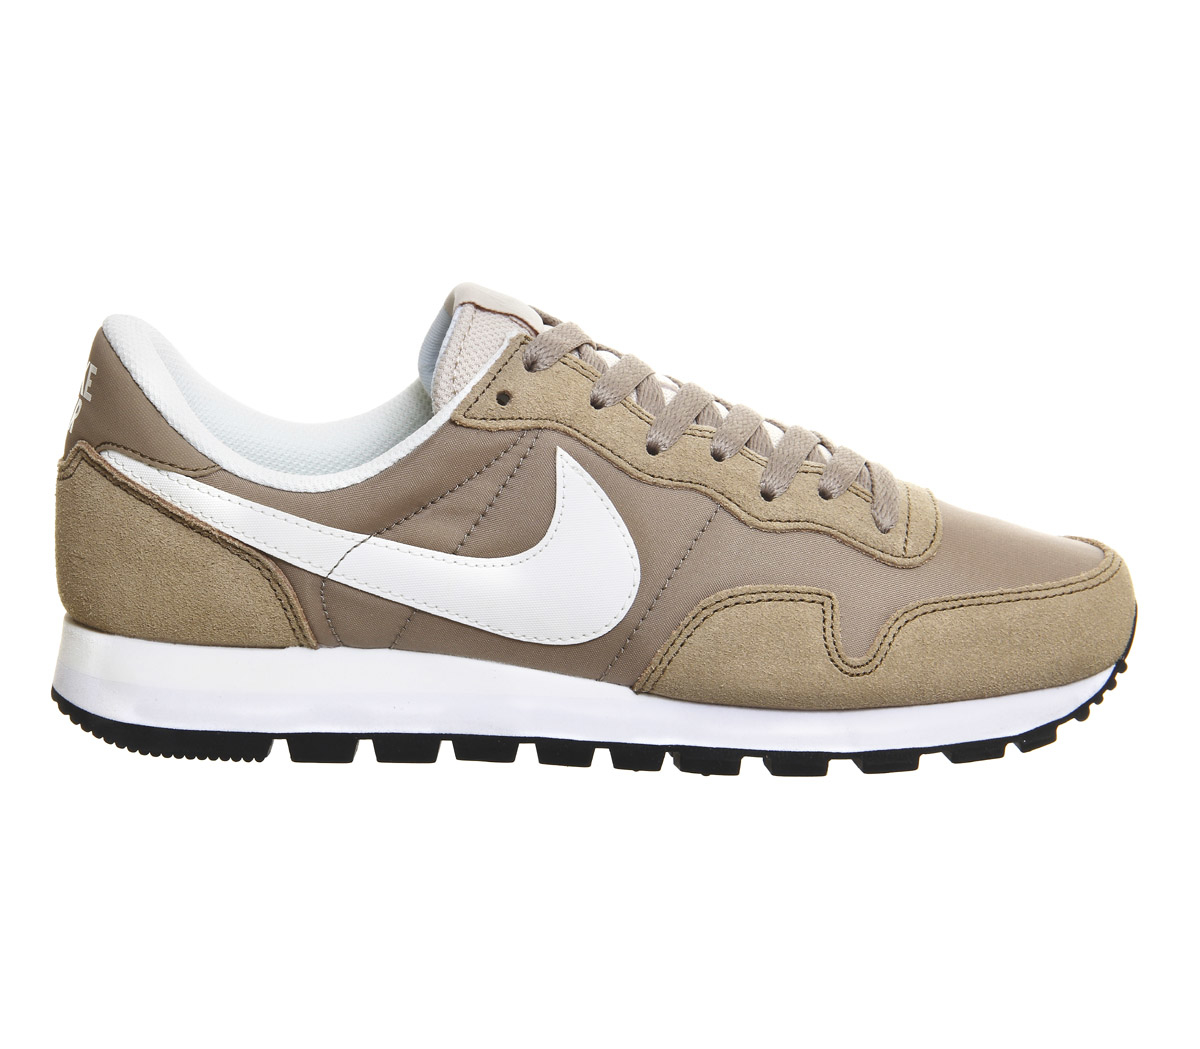 nike air pegasus 83 in beige for men bamboo lyst. Black Bedroom Furniture Sets. Home Design Ideas